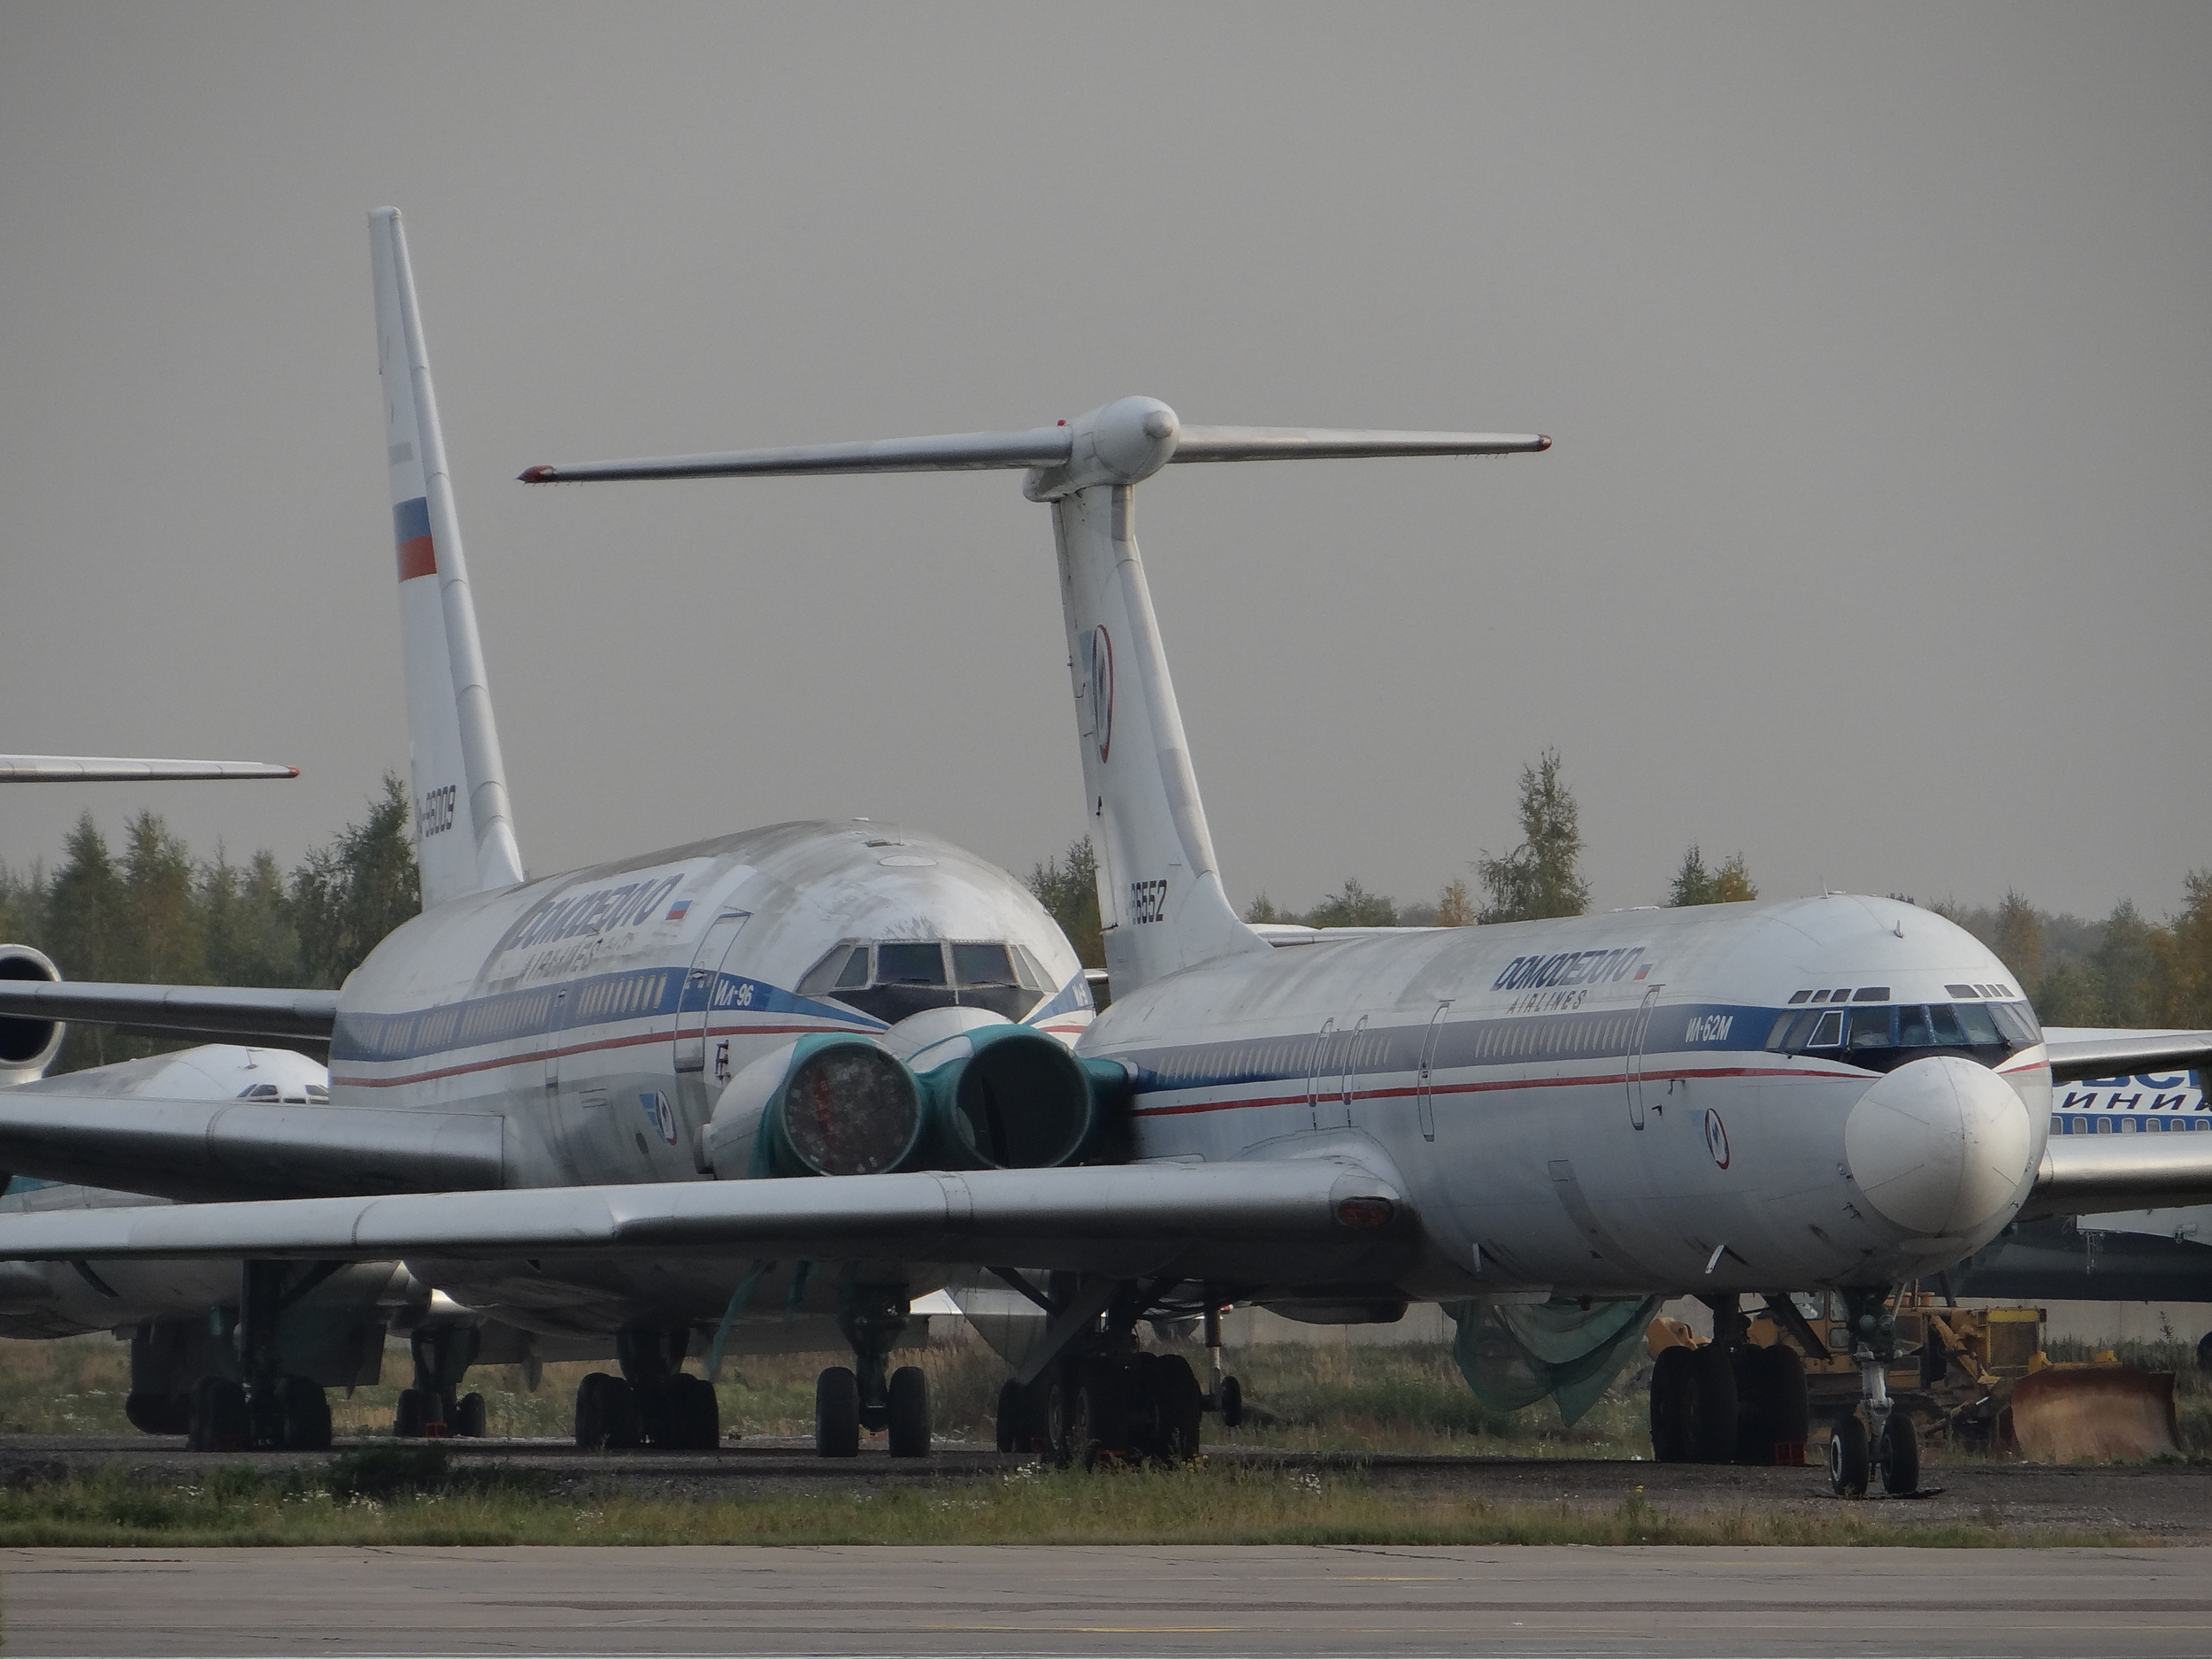 A bit of Russian/Soviet aviation archaeology at DME: an Ilyushin Il-96-300 and a Il-62M of the late  Domodedovo Airlines , a carrier that ceased operations in 2008. Still quite an impressive sight.